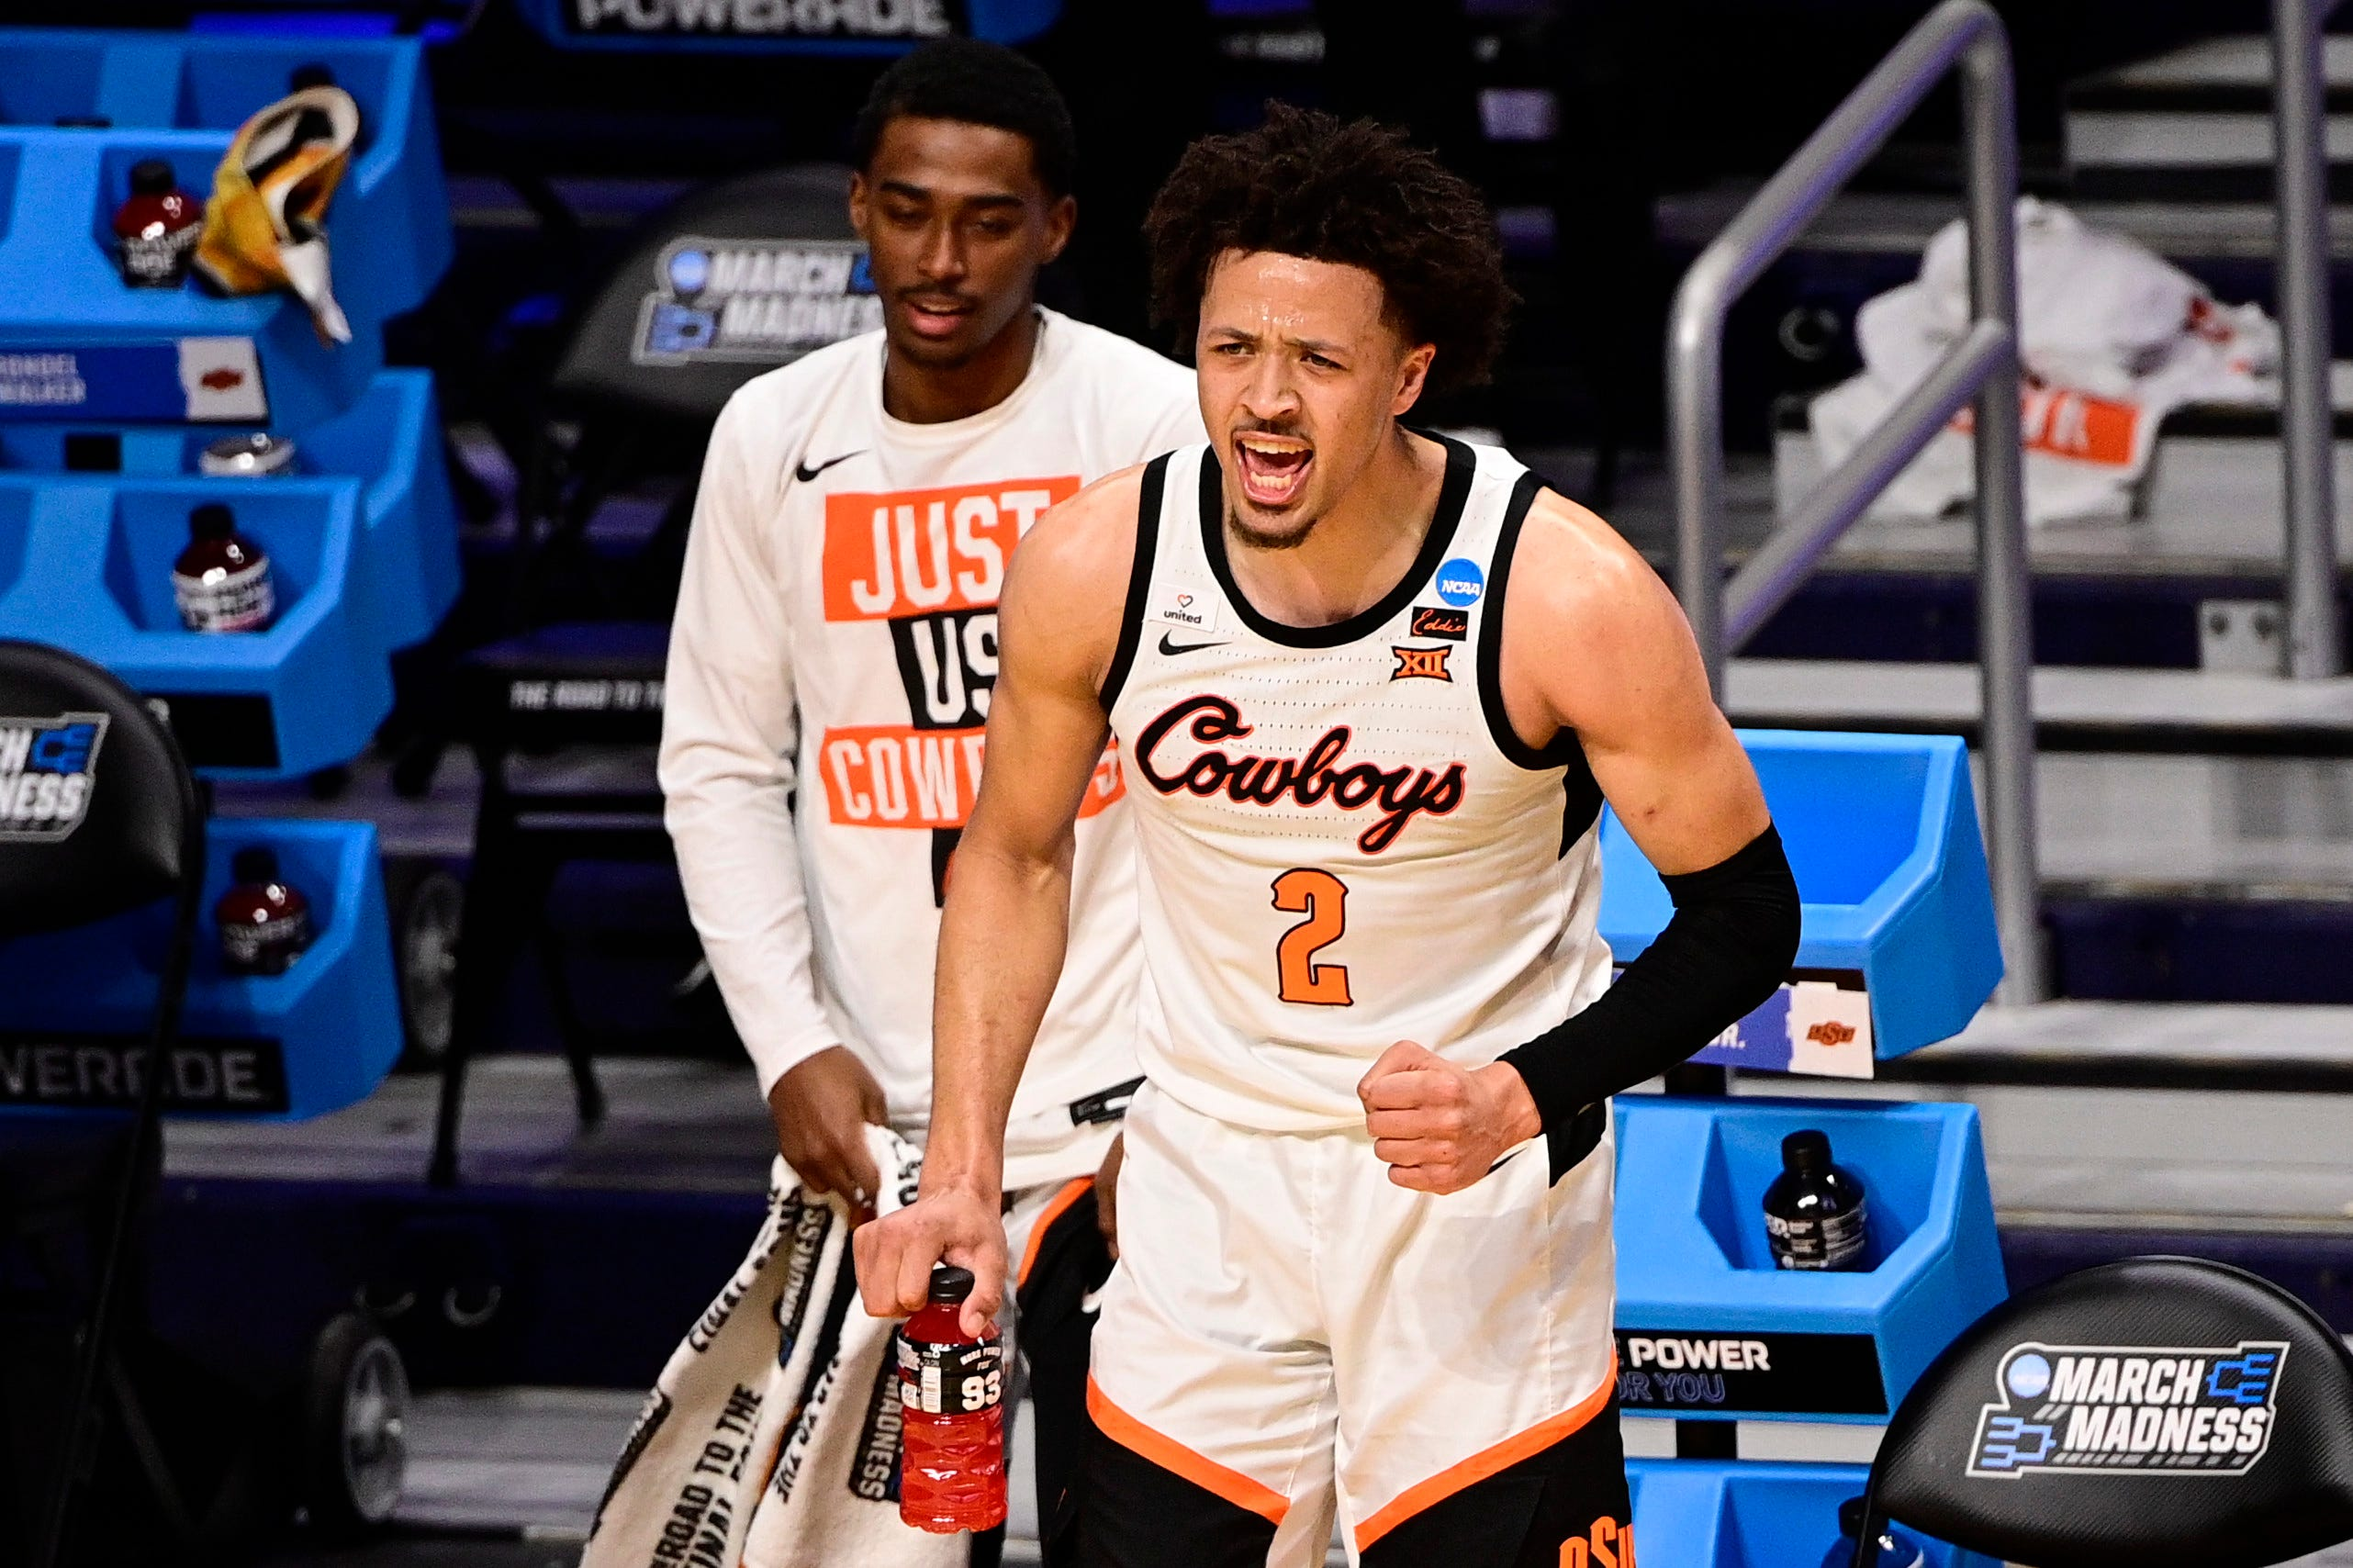 NBA Mock Draft 1.0: Cade Cunningham out front as No. 1 pick in loaded class